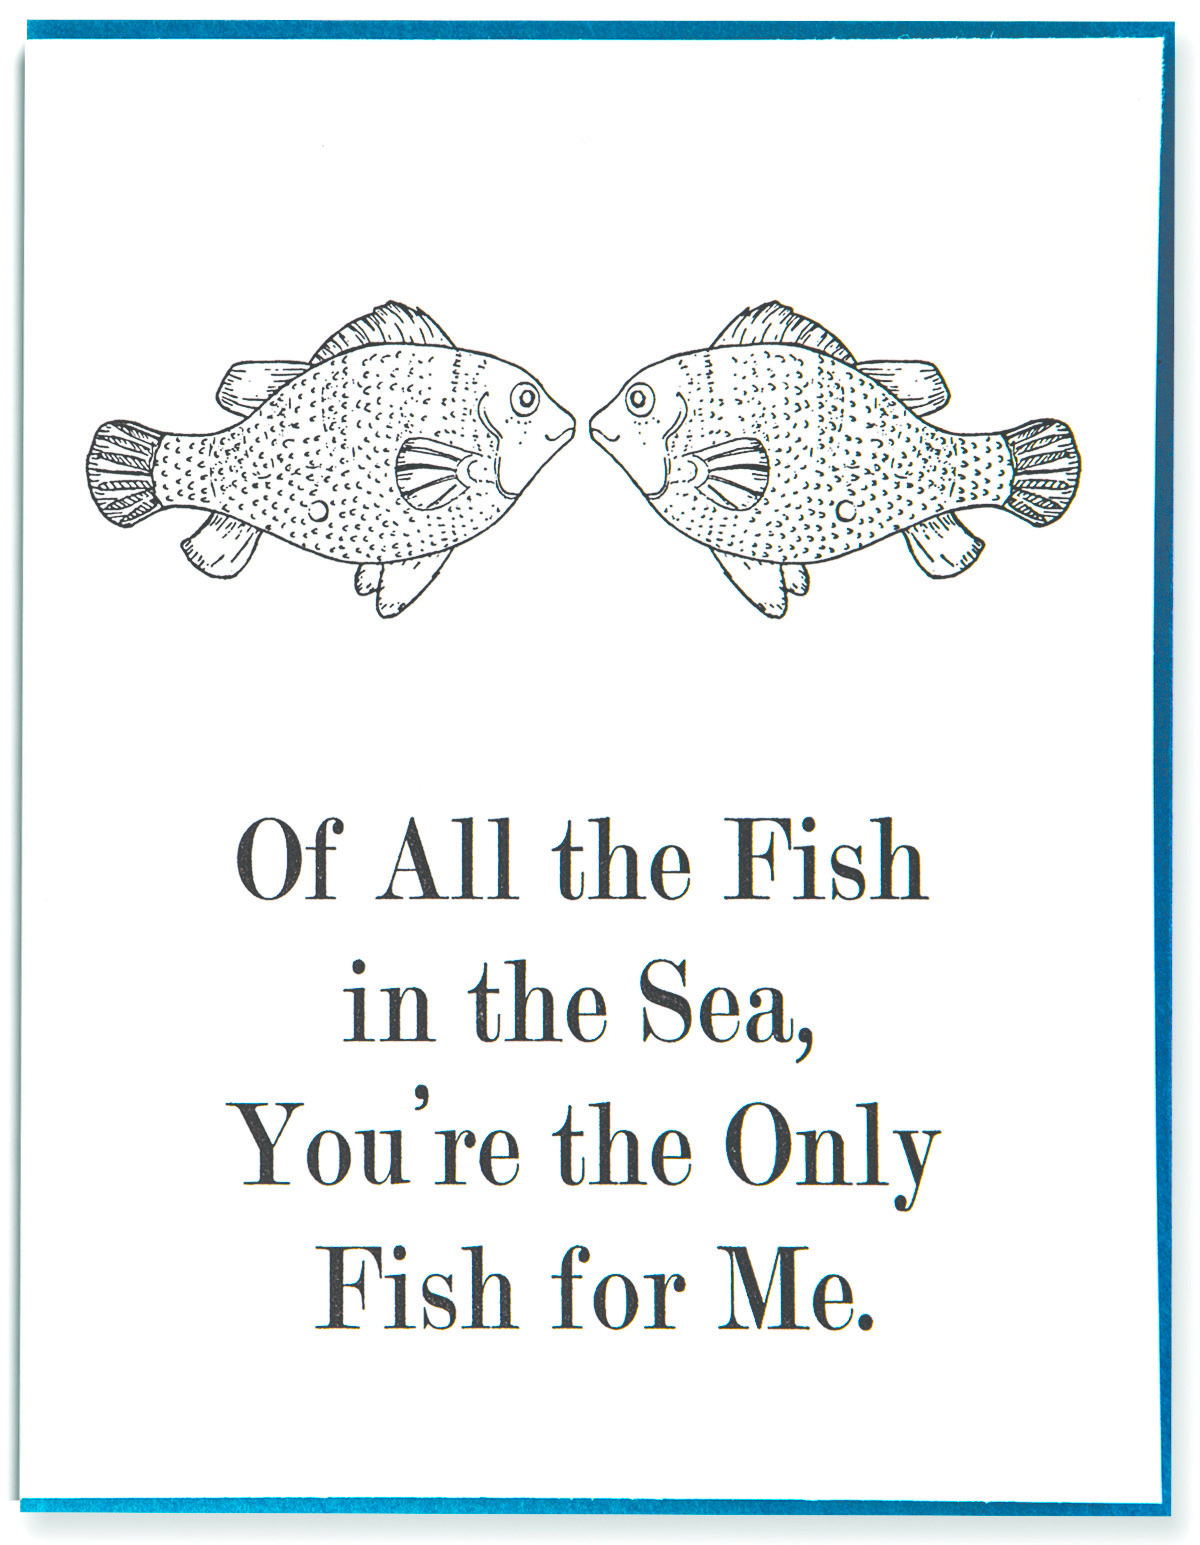 Of all the fish in the sea letterpress printed romance for All the fish in the sea